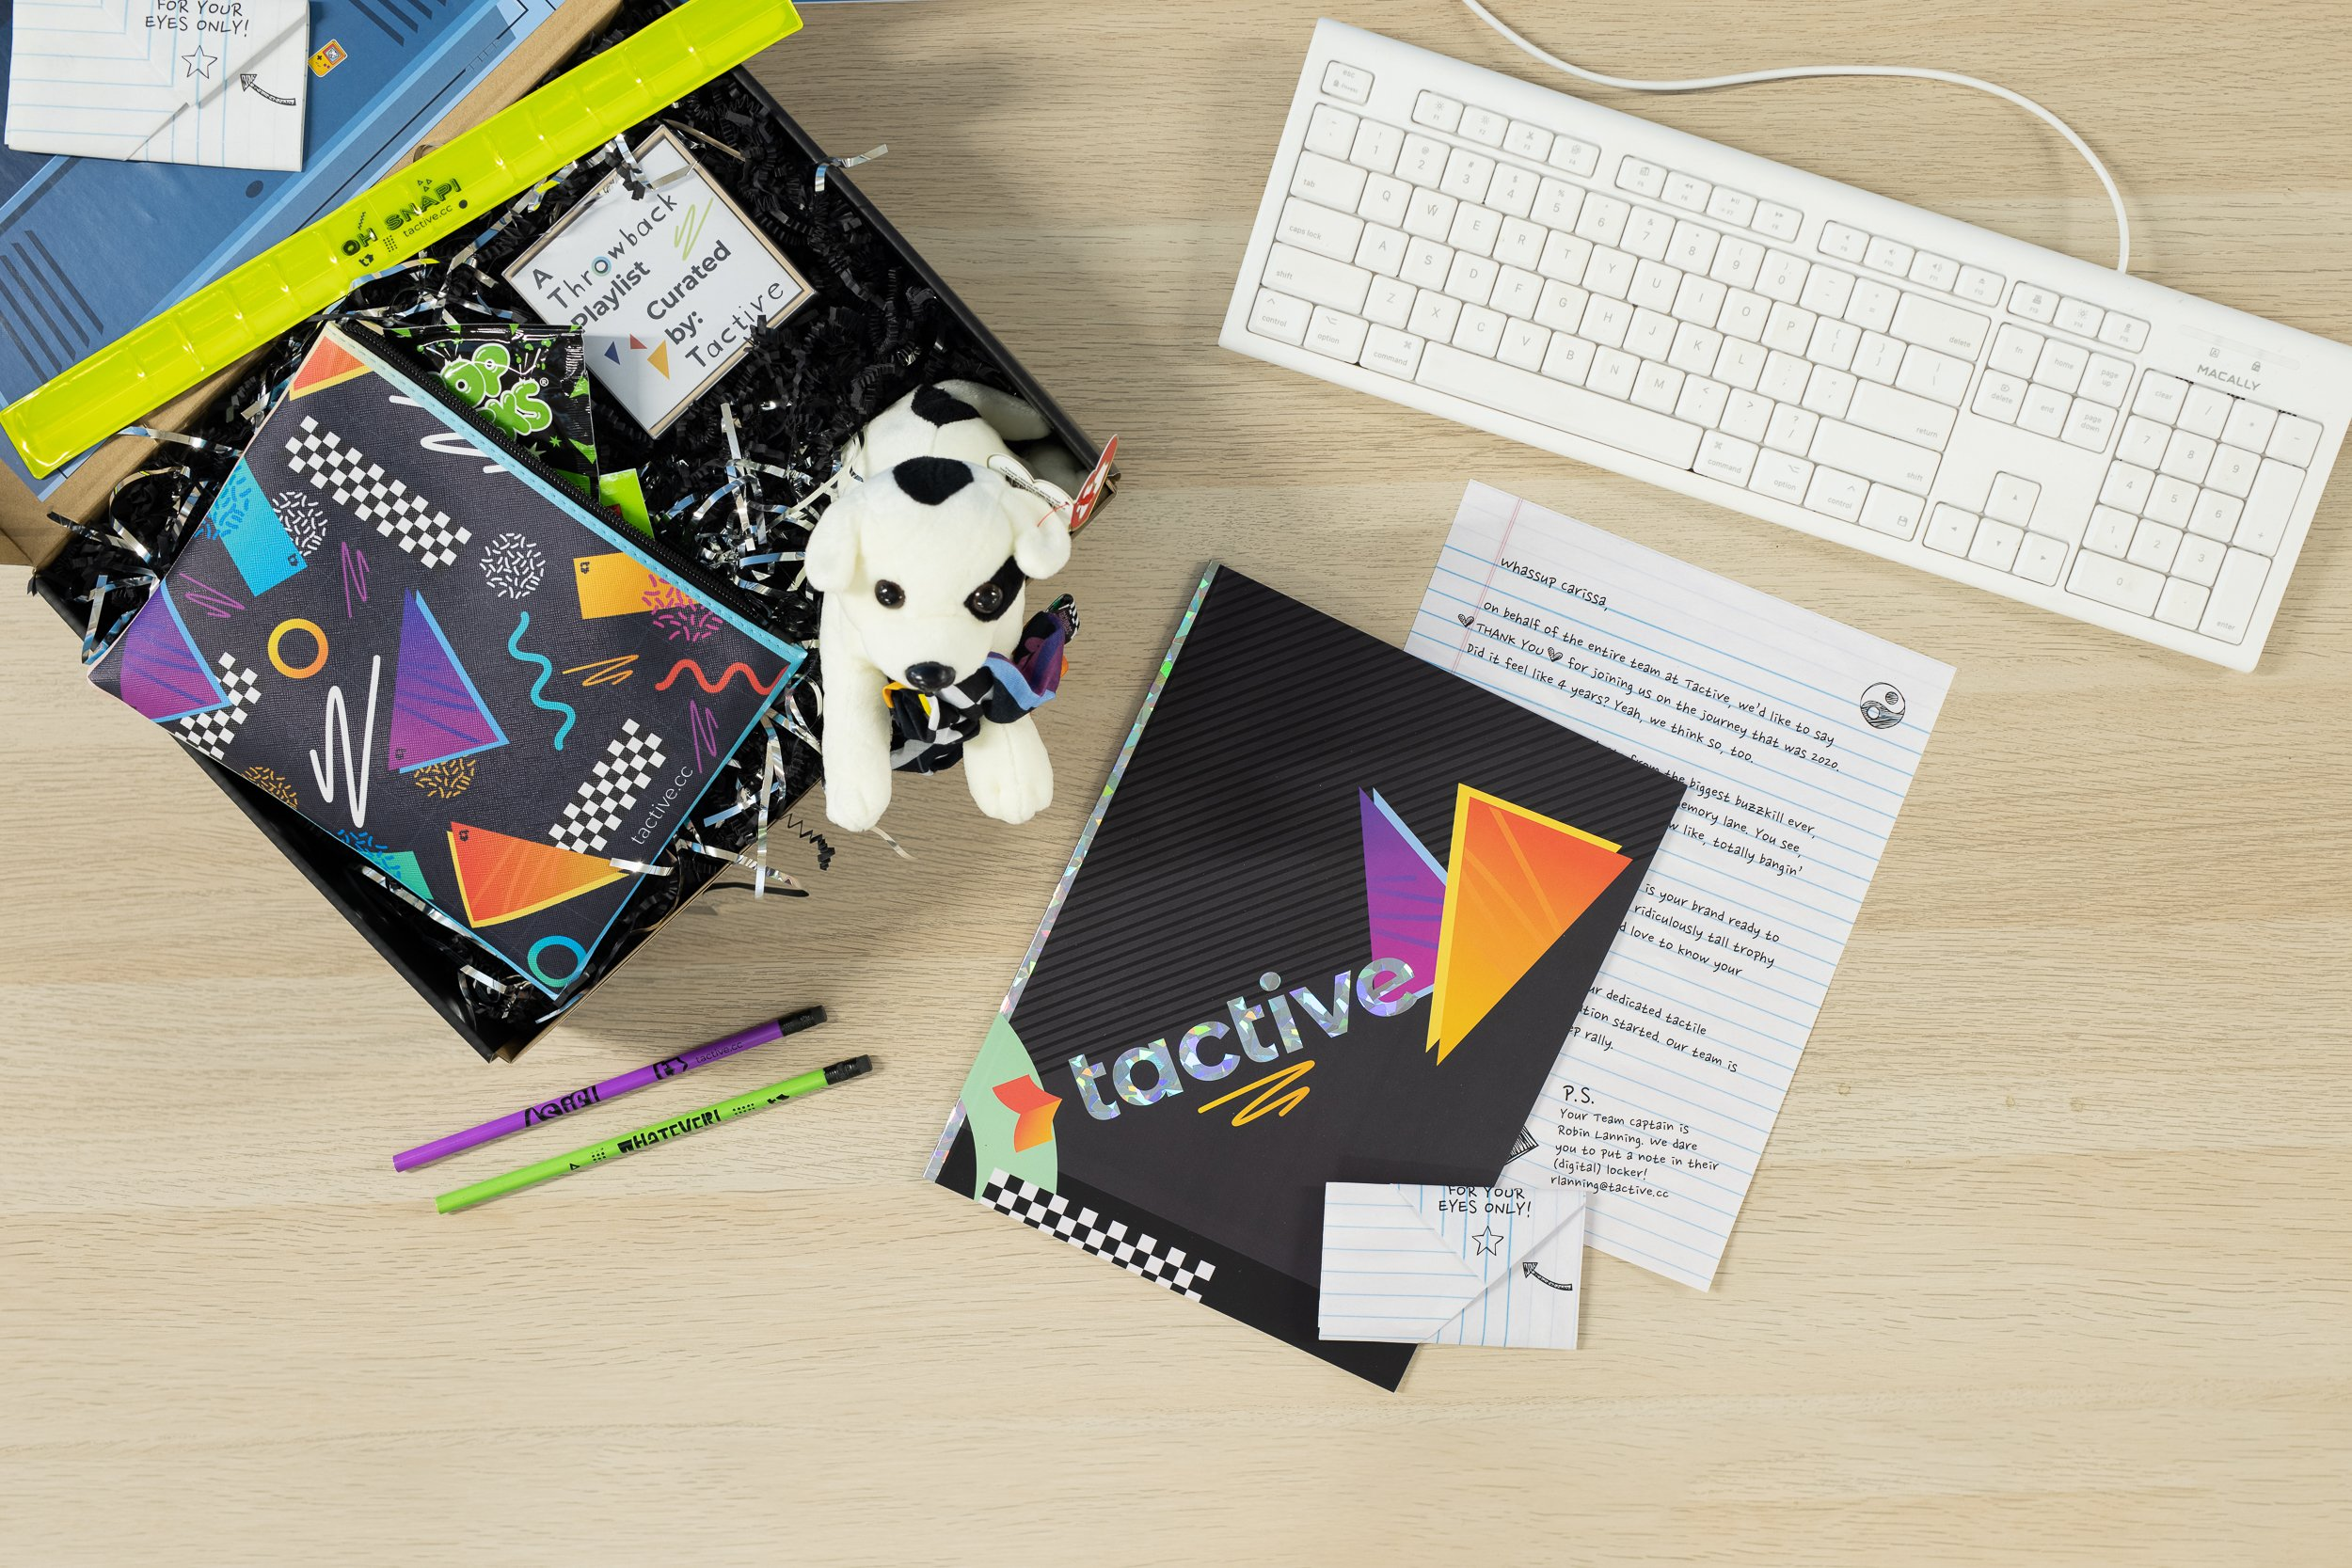 90s themed marketing campaign kit with yearbook, letter, and custom stuffed dog